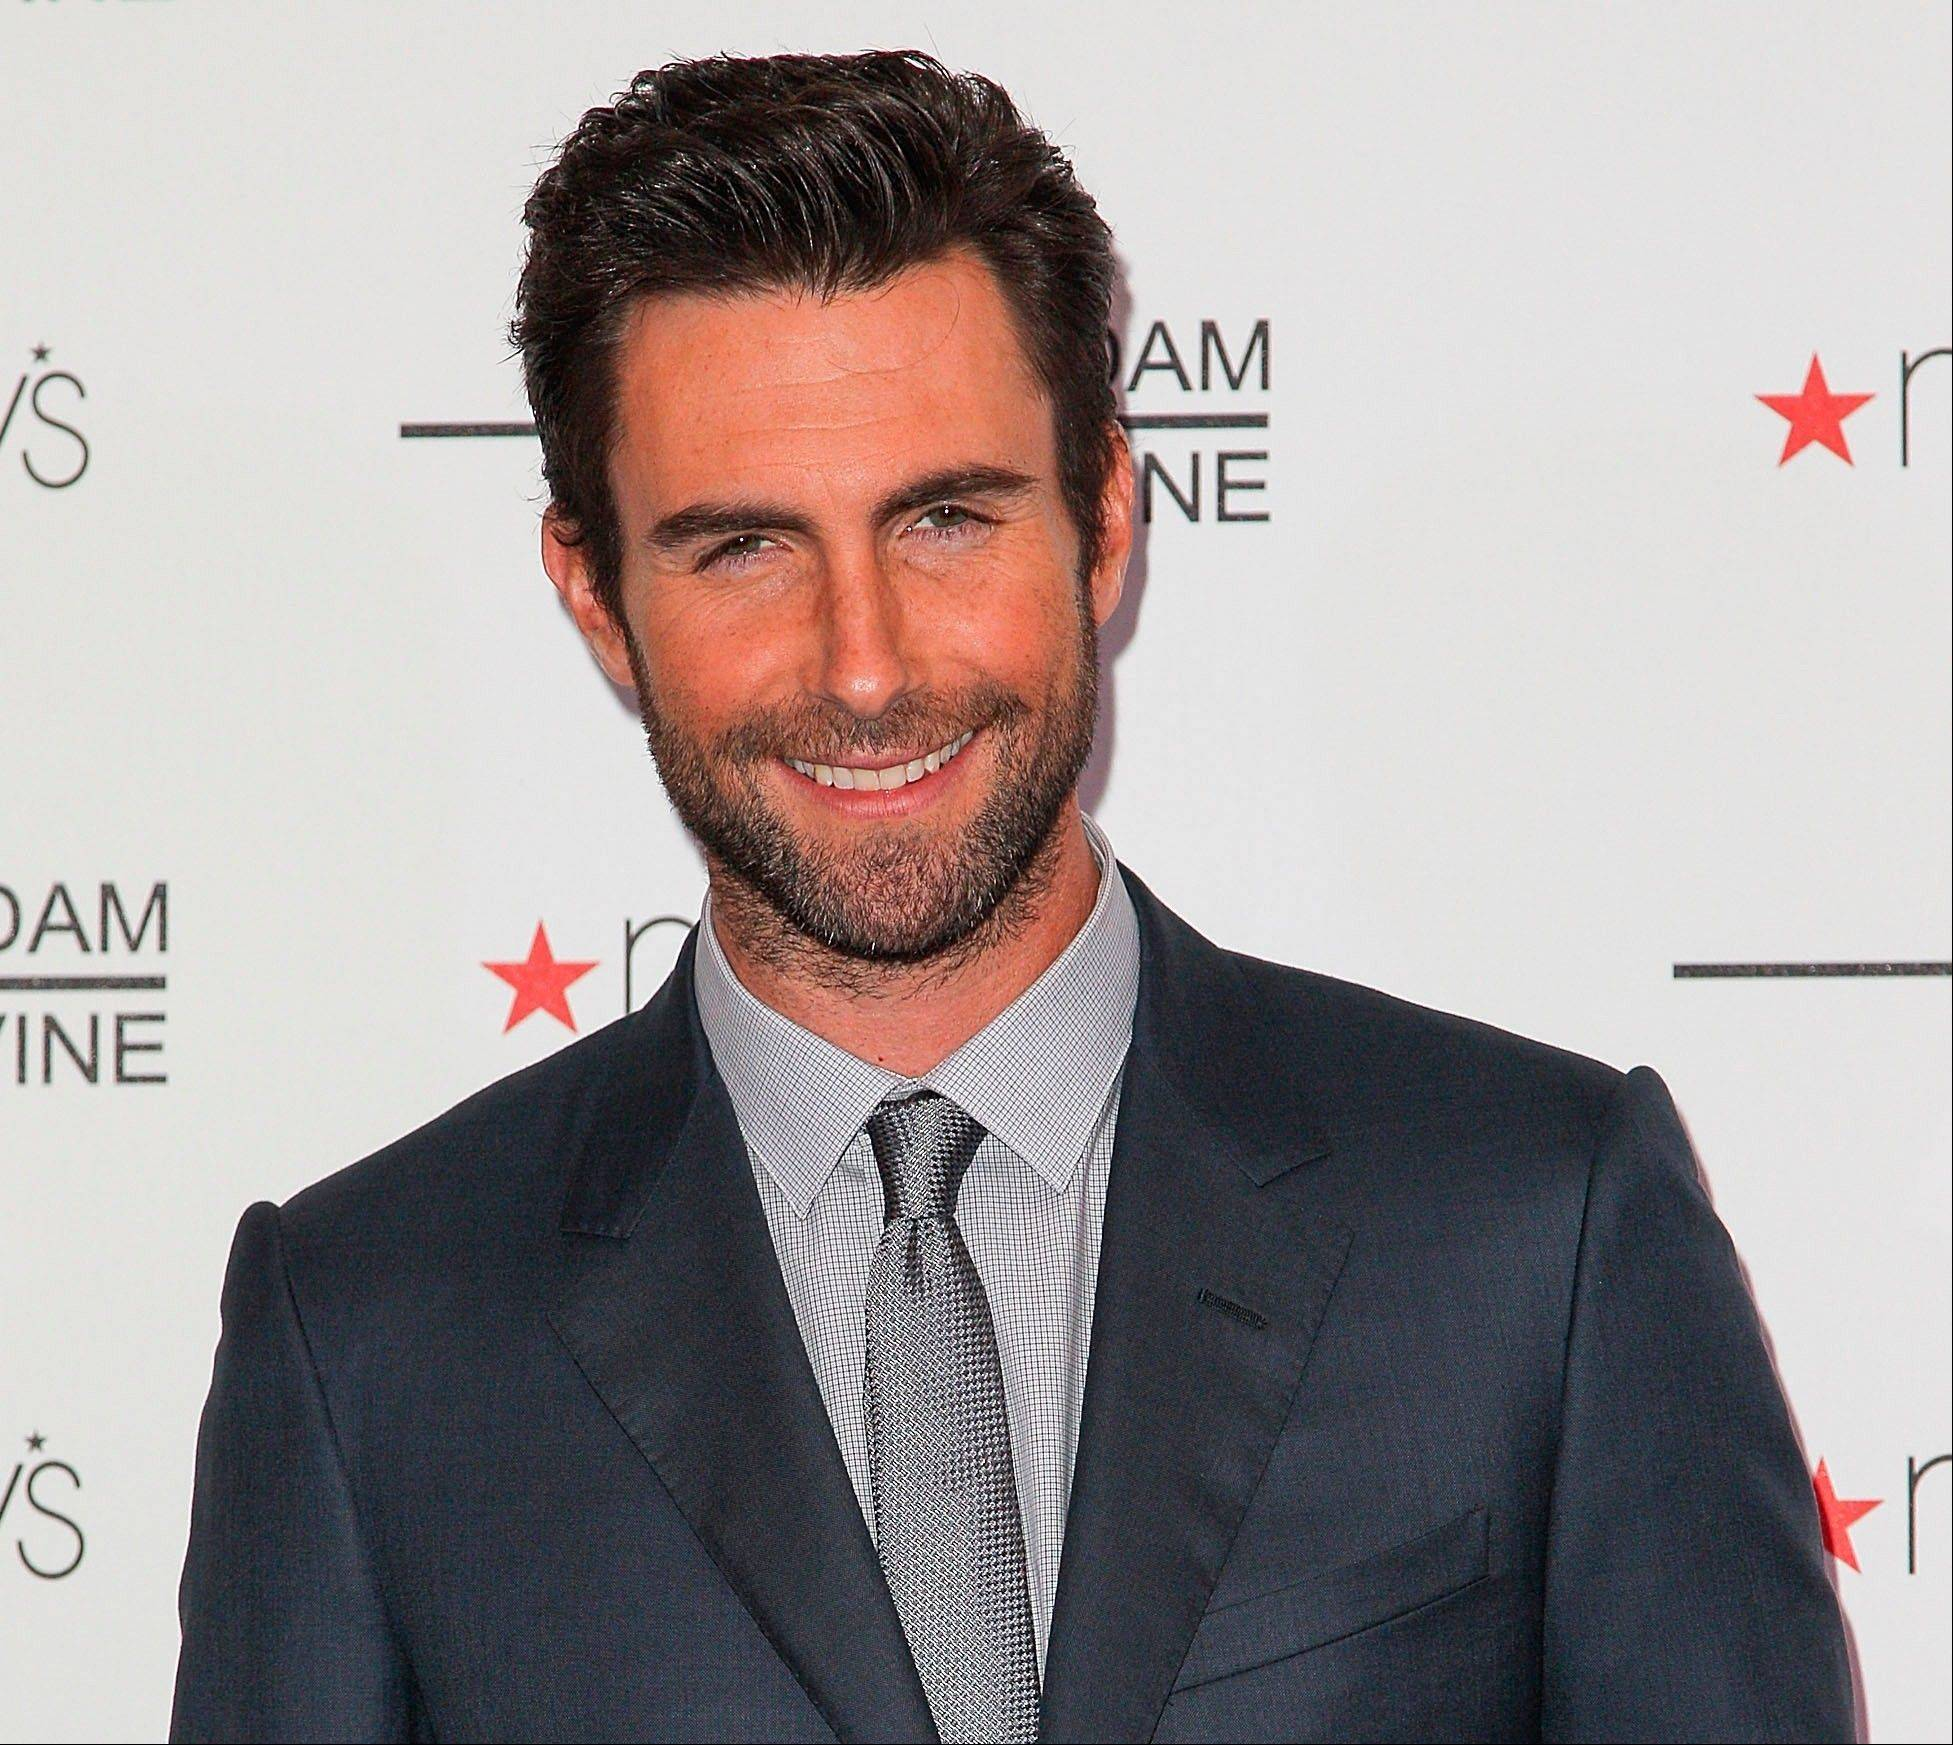 Recording artist Adam Levine has been named Sexiest Man Alive 2013 by People magazine announced Tuesday, Nov. 19, 2013. He is a coach on the NBC�s hit series, �The Voice.�